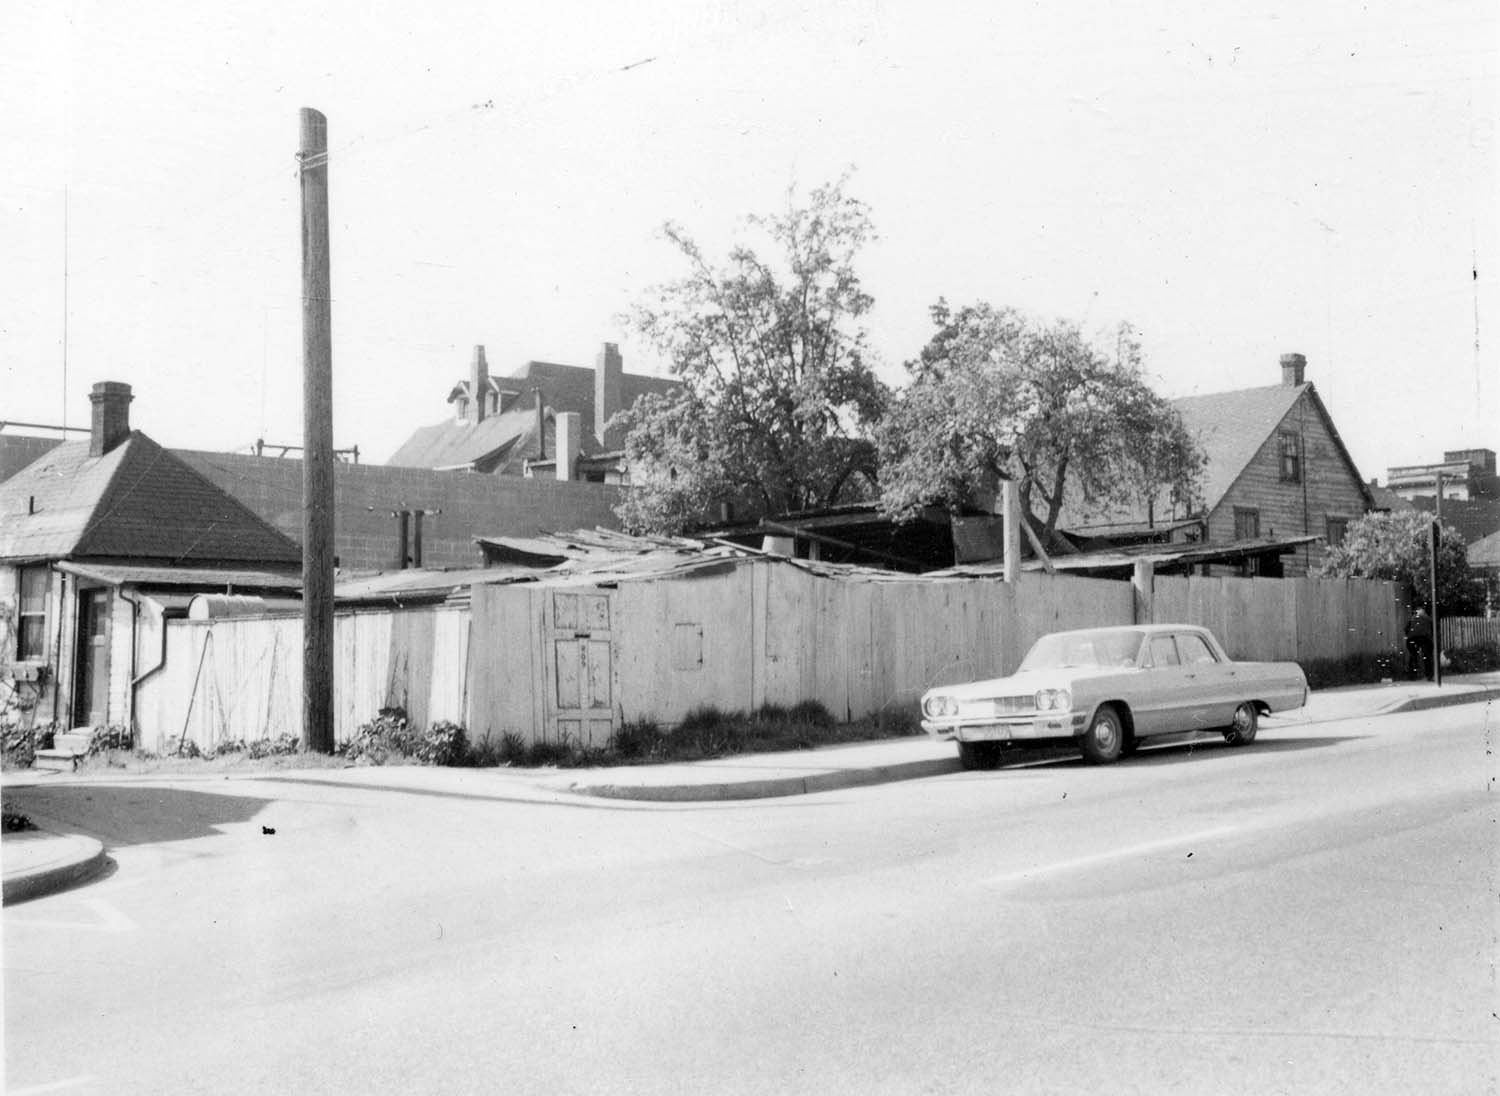 Houses at 278 Union Street and 809 Gore Avenue, 1972. Reference code COV-S168-: CVA 203-69